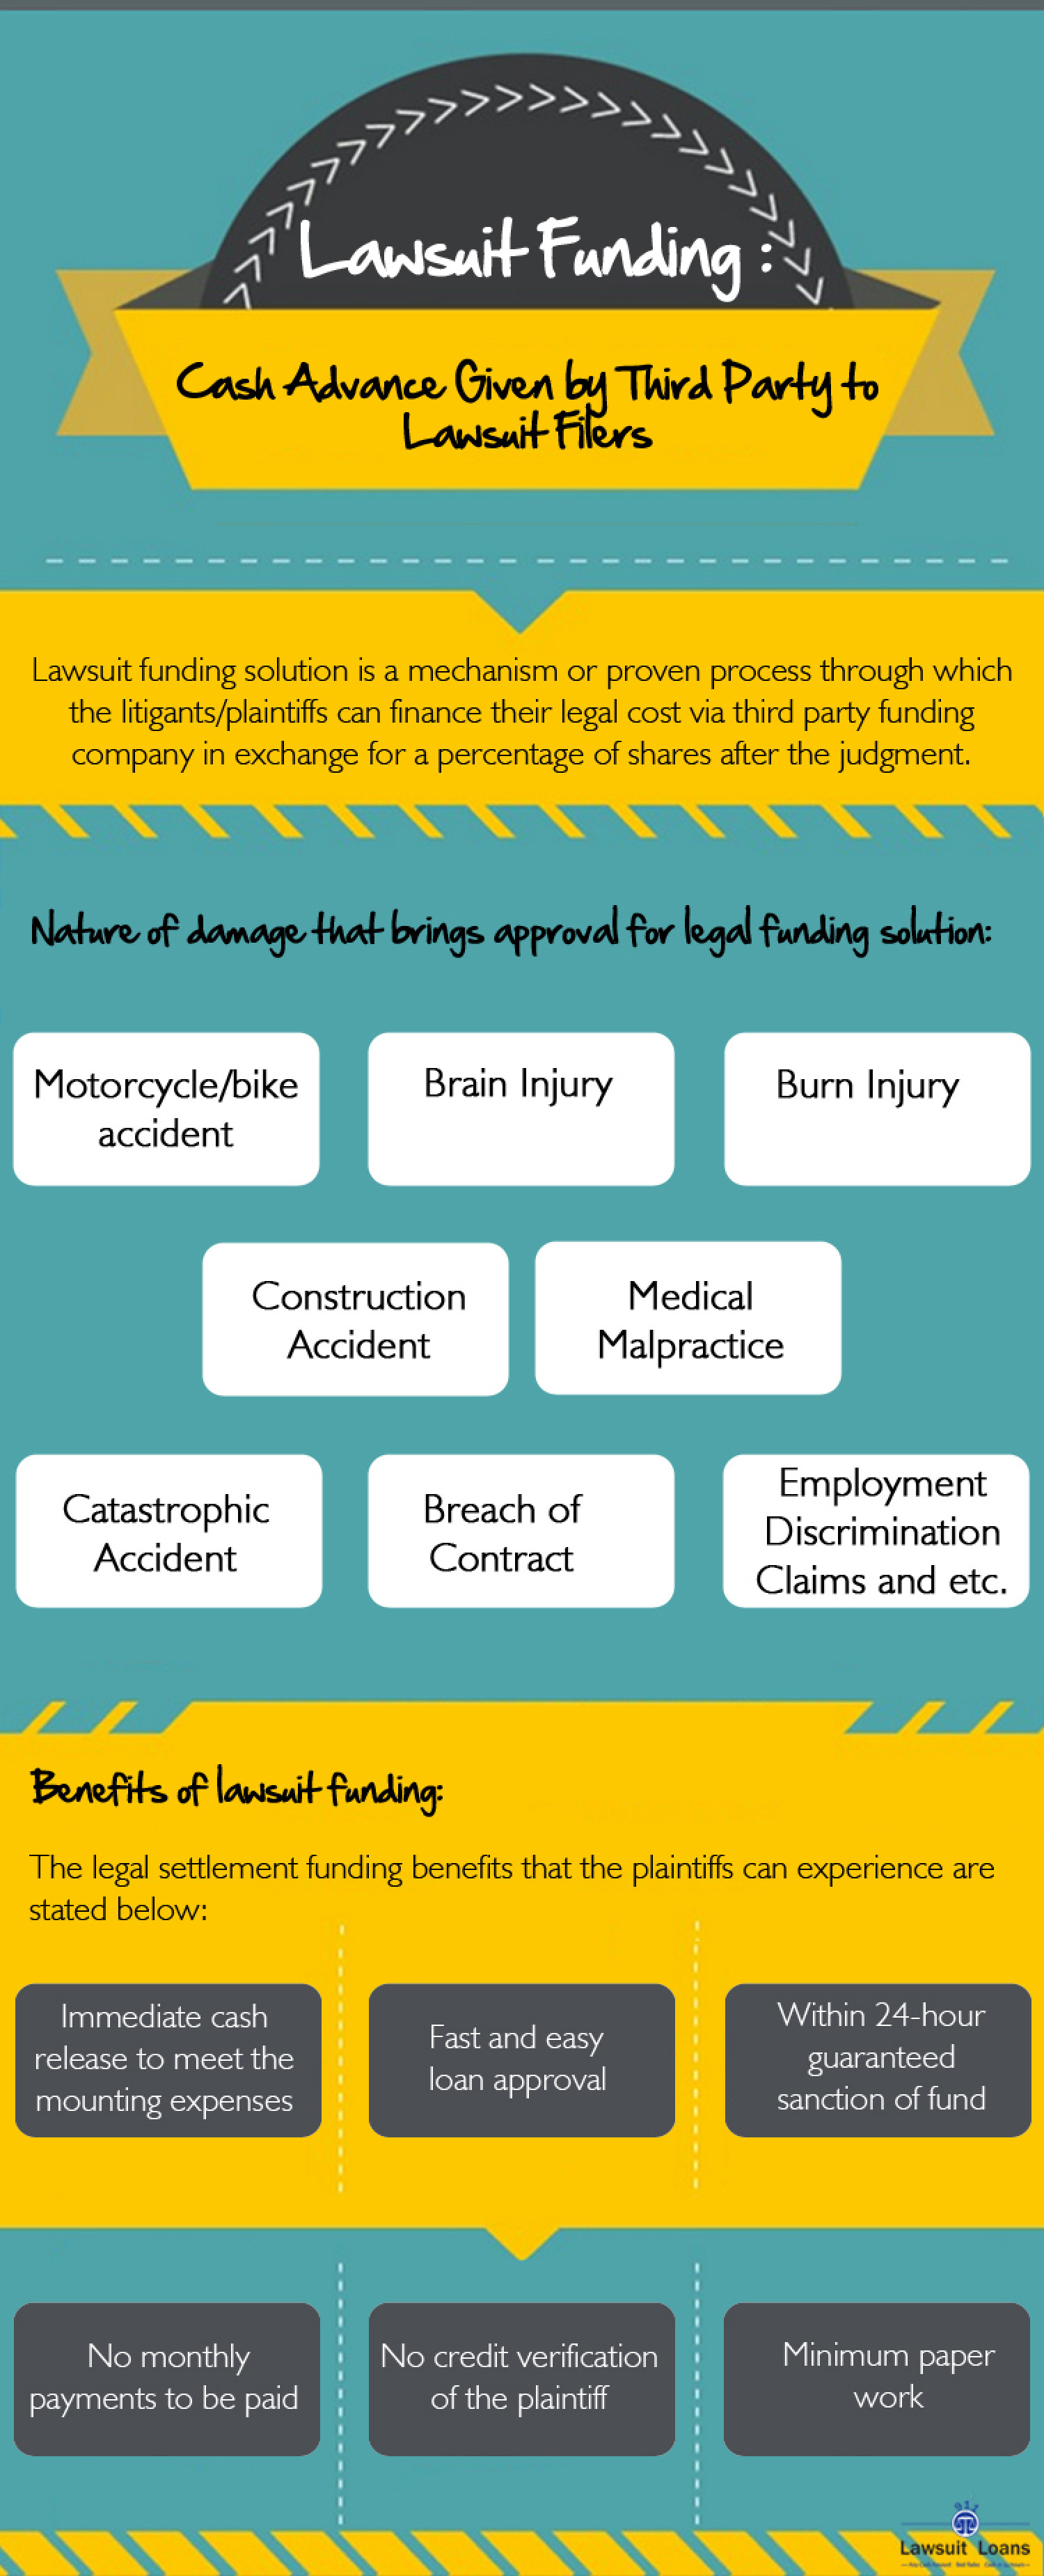 Lawsuit Funding: Cash Advance Given by Third Party to Lawsuit Filers Infographic